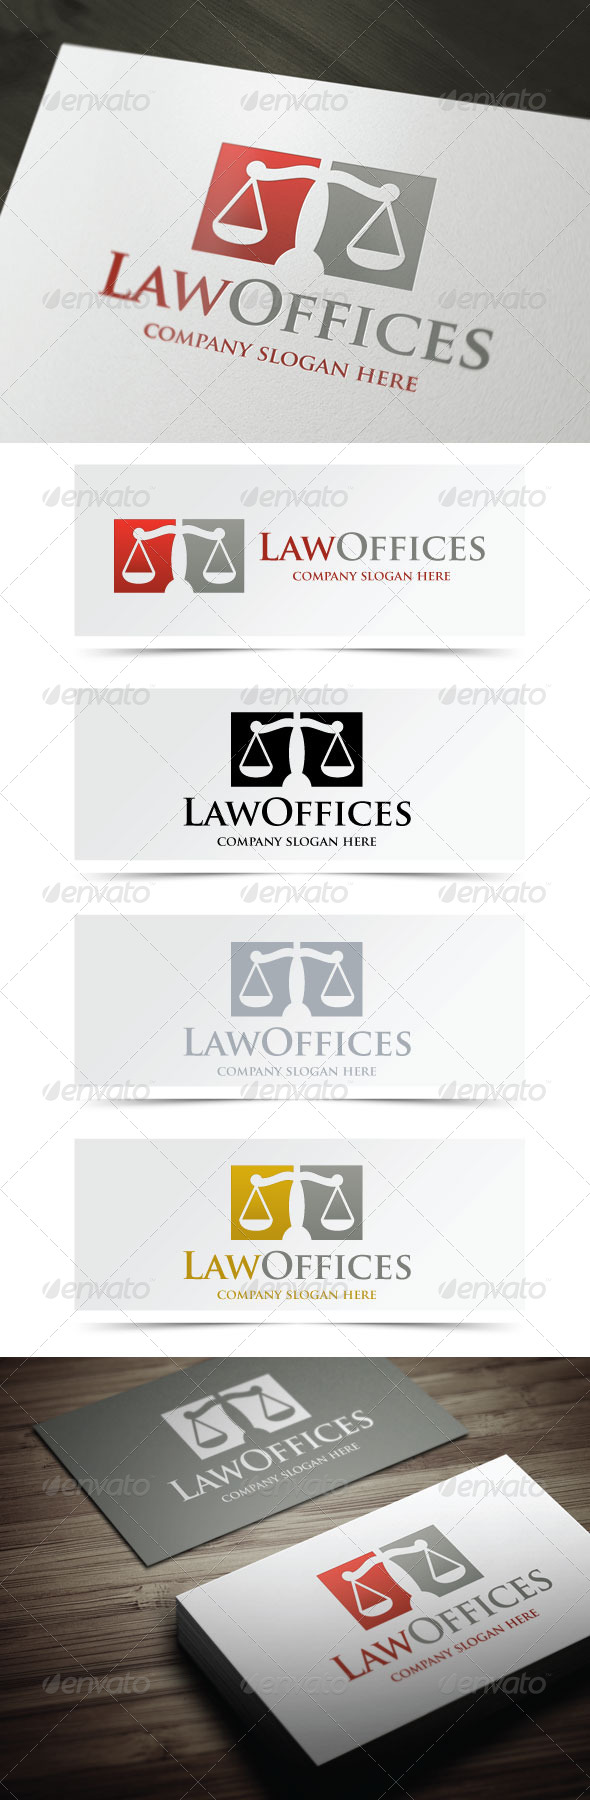 GraphicRiver Law Offices 5033002